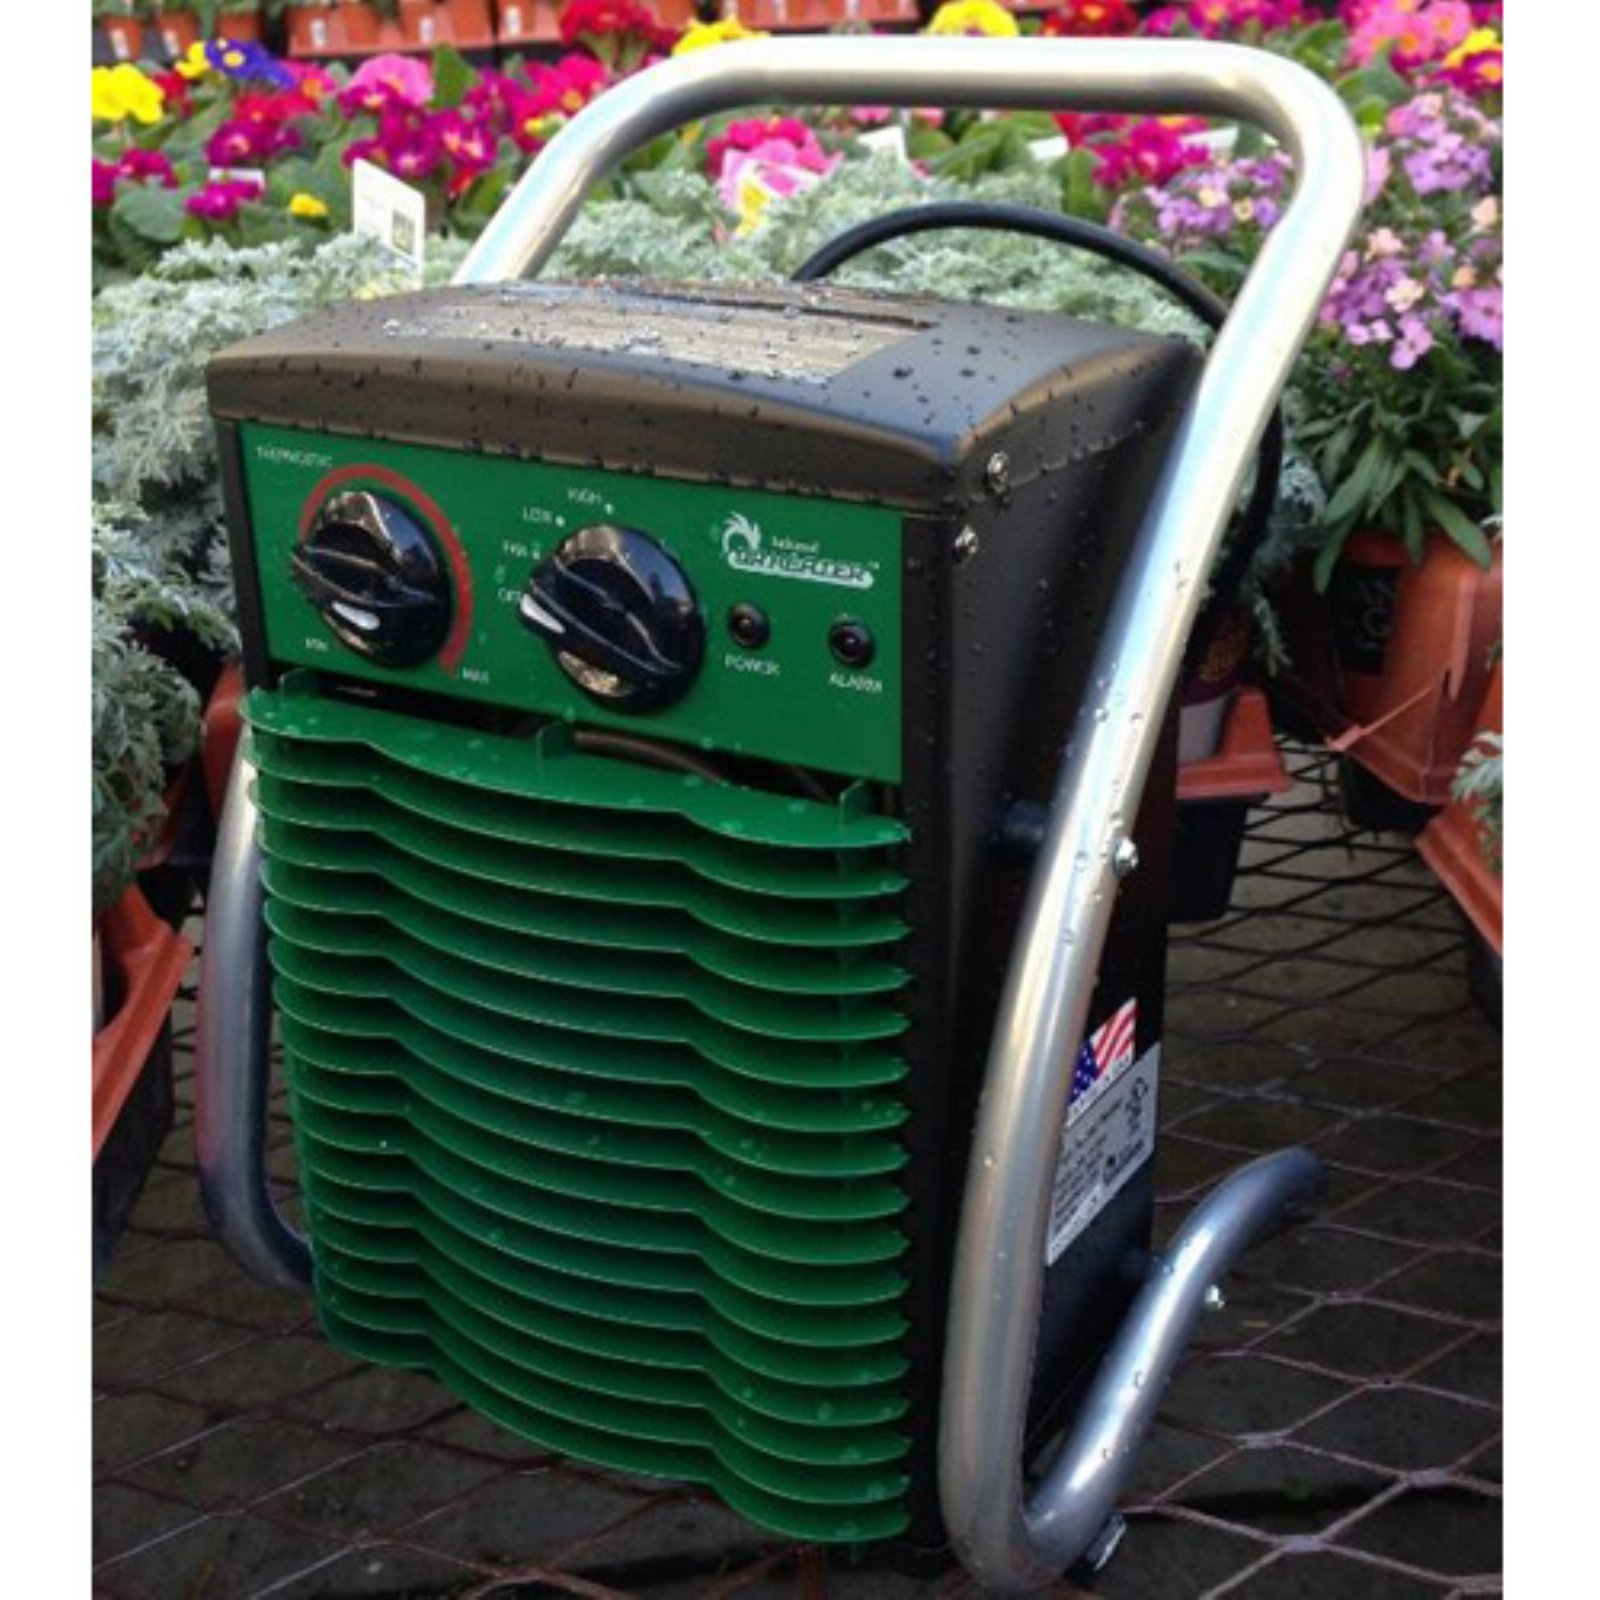 Dr. Infrared Heater DR-218 Greenhouse Heater, 3000W